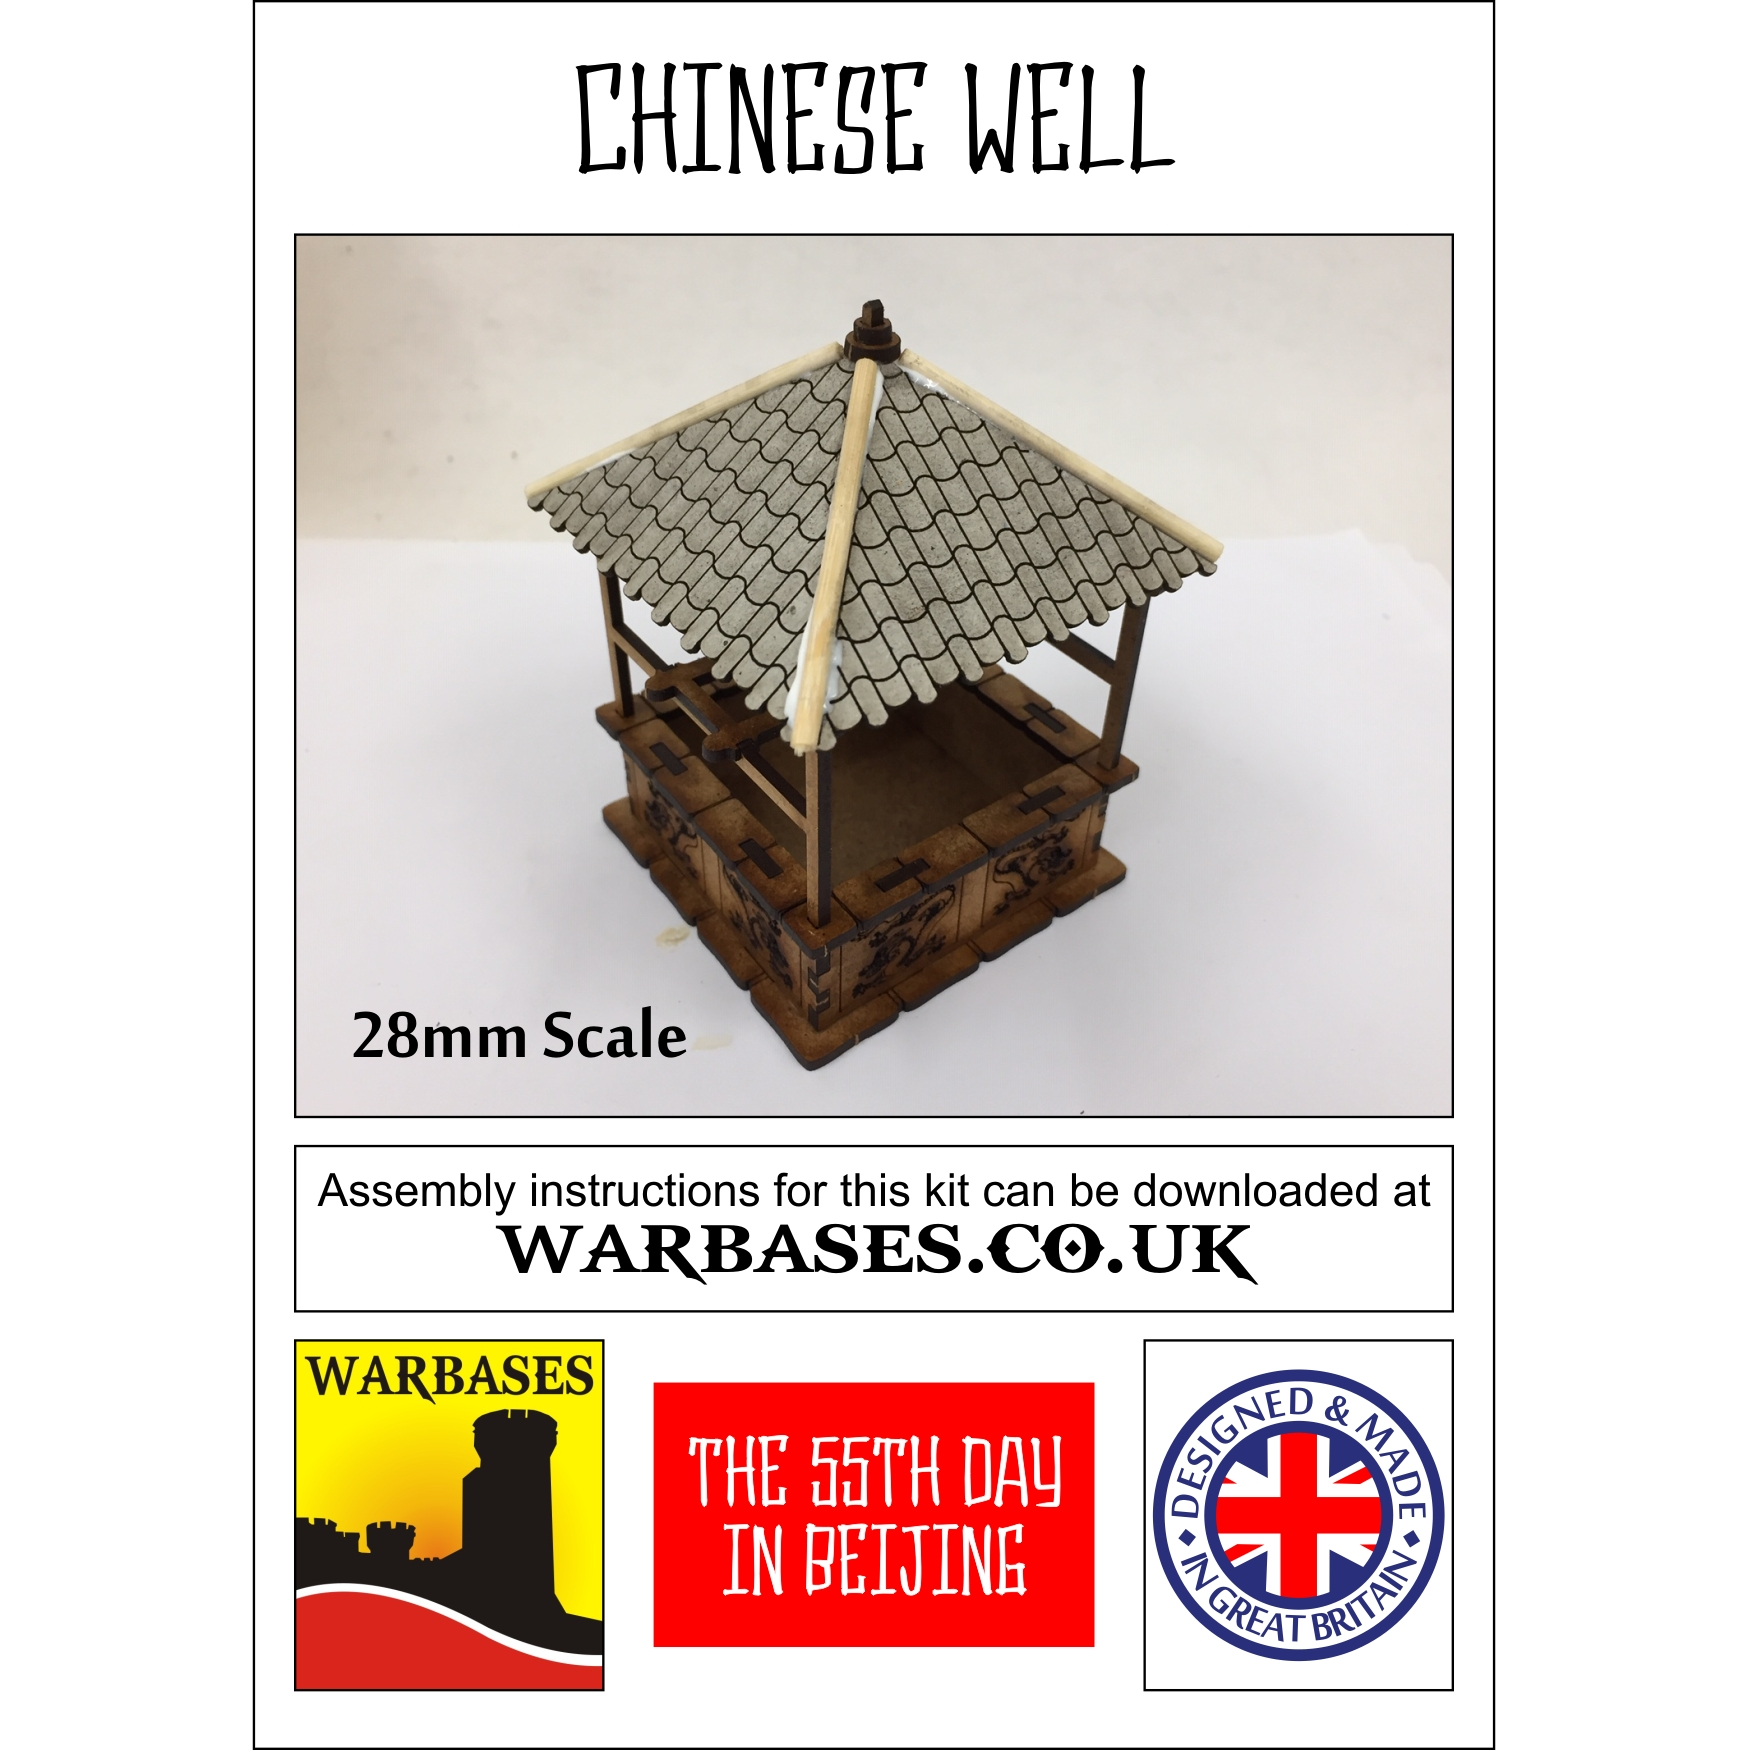 CHA2 - Chinese Well